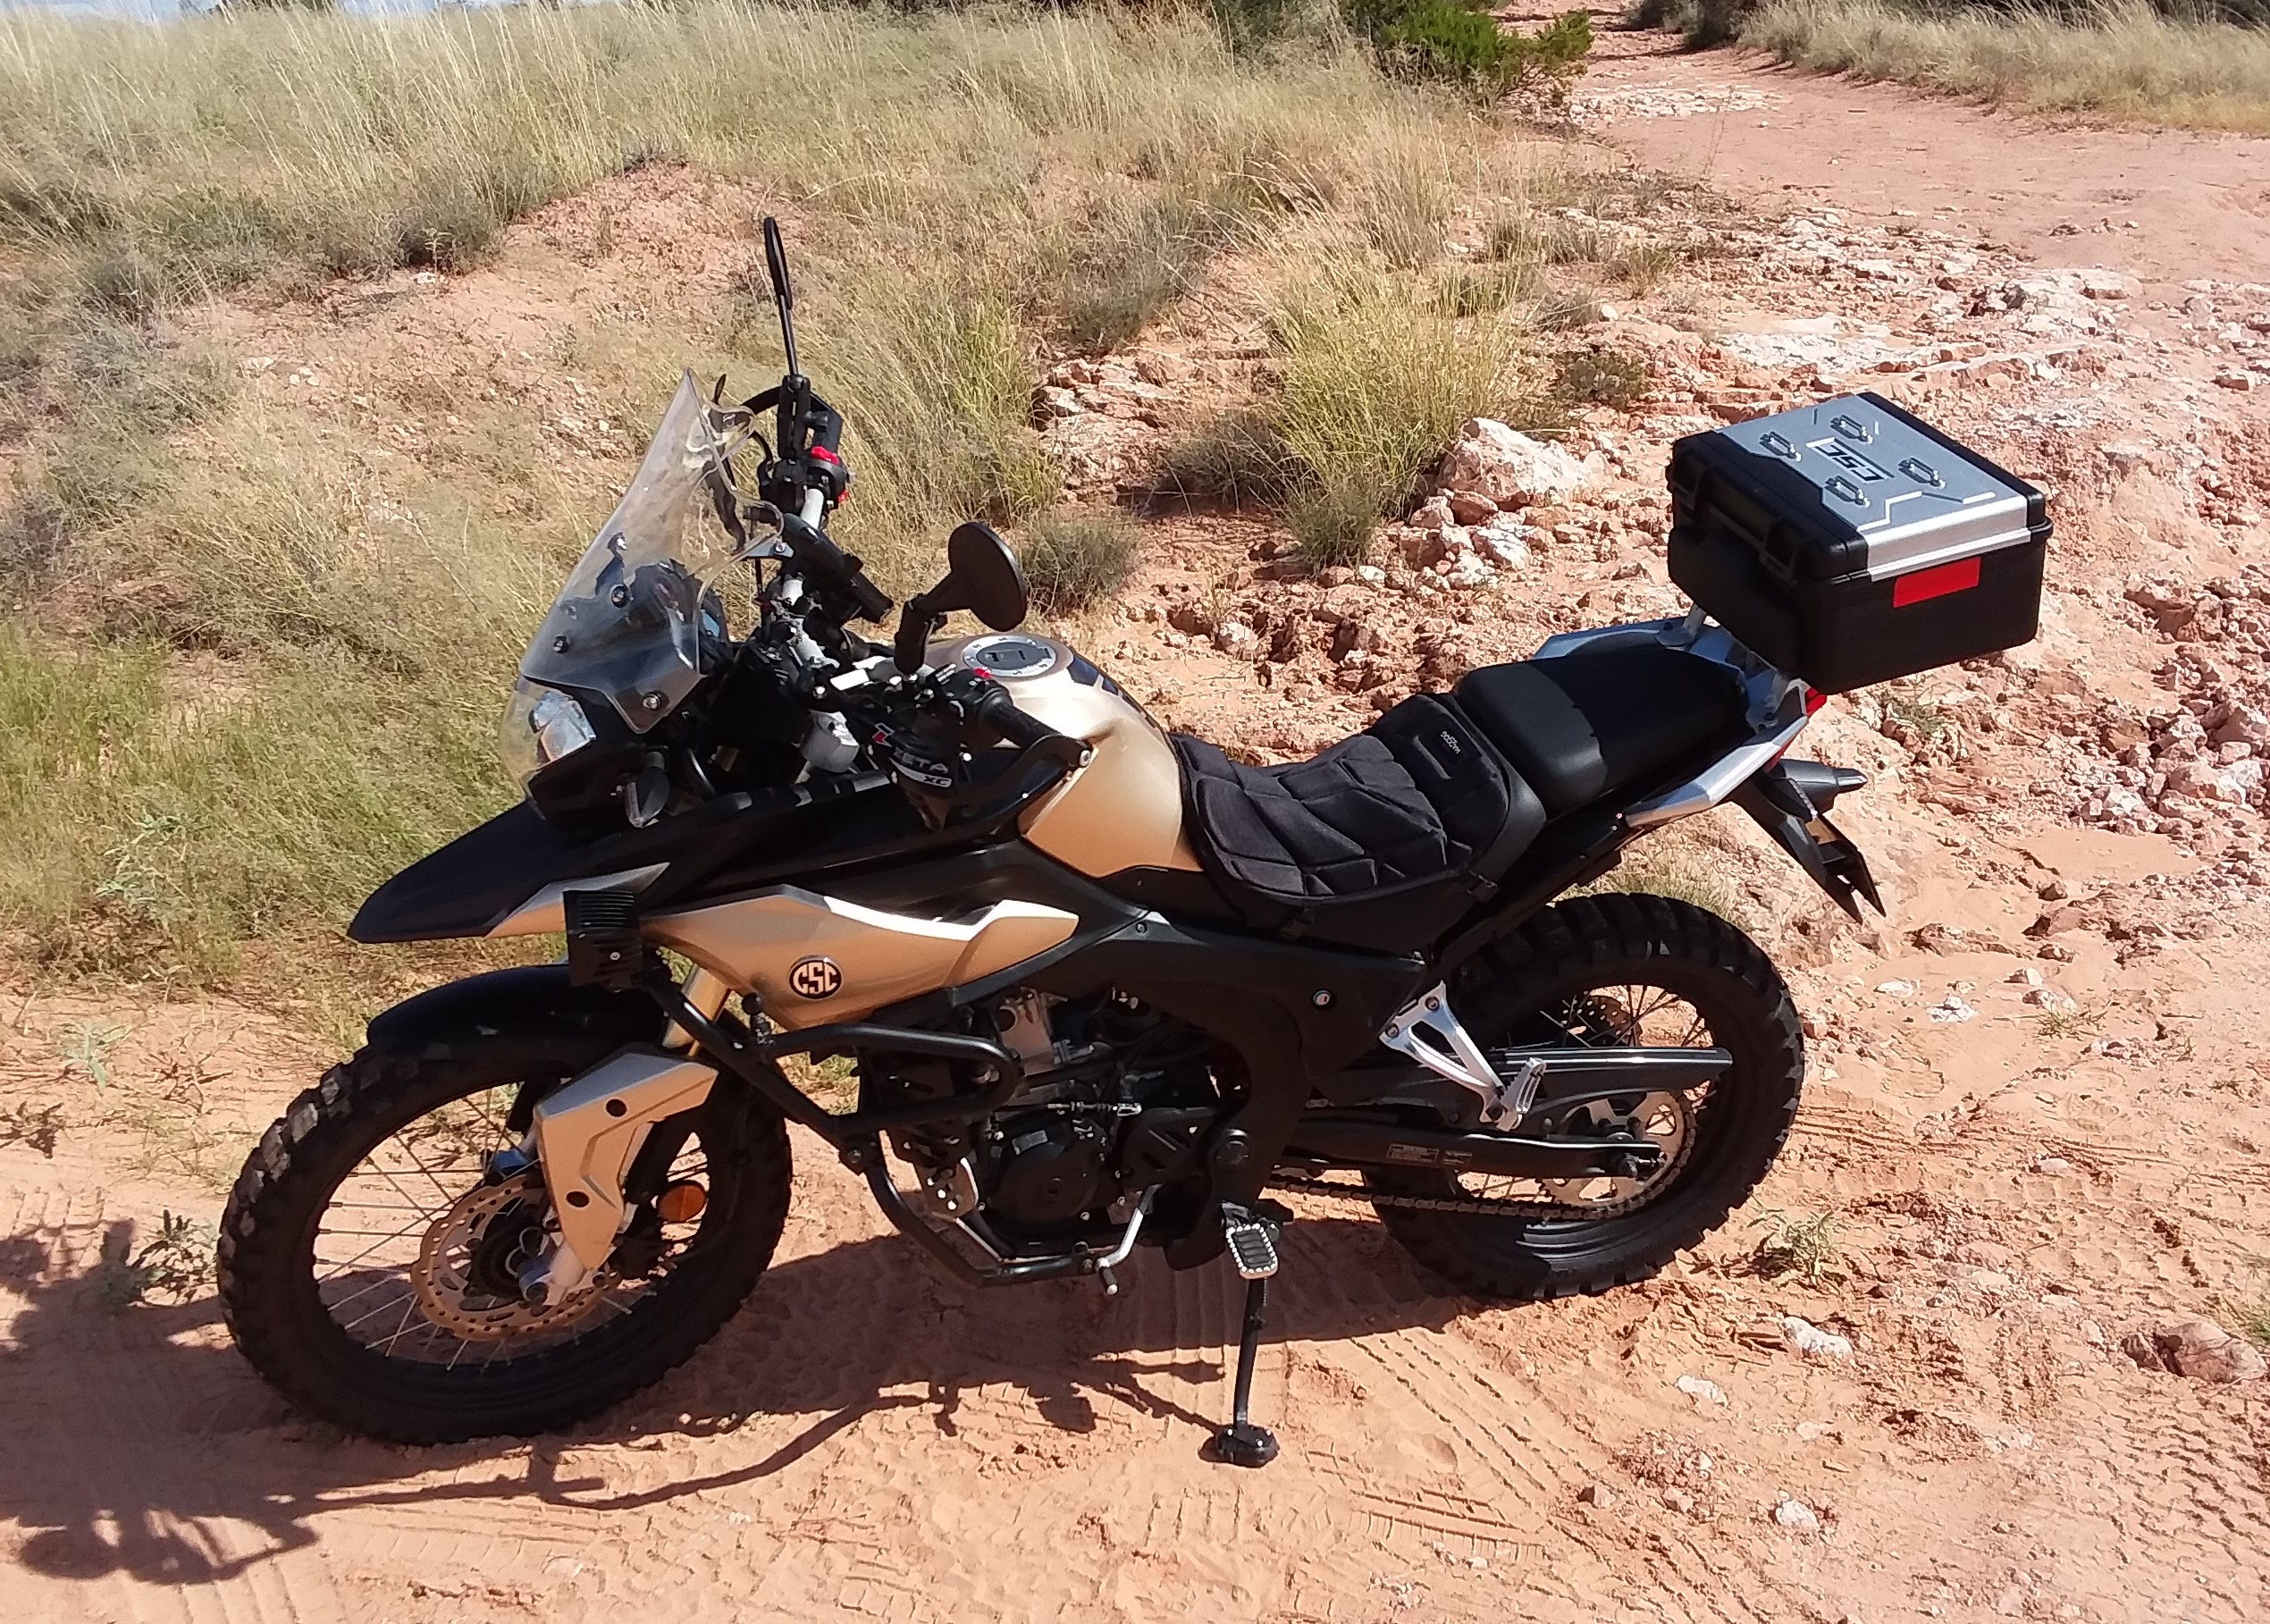 Top FIVE Modifications to Your CSC RX3 for Adventure Riding